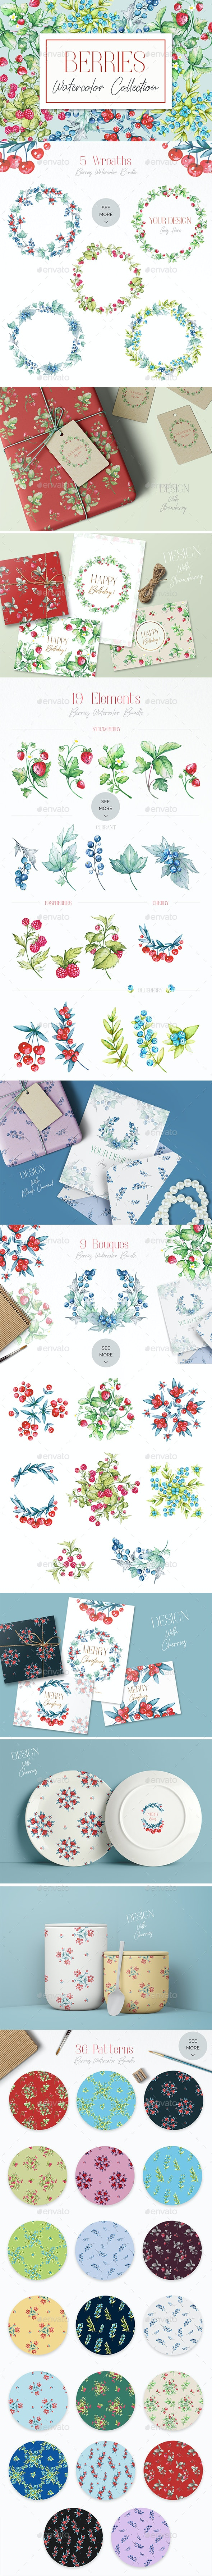 Berries Watercolor Collection - Flourishes / Swirls Decorative